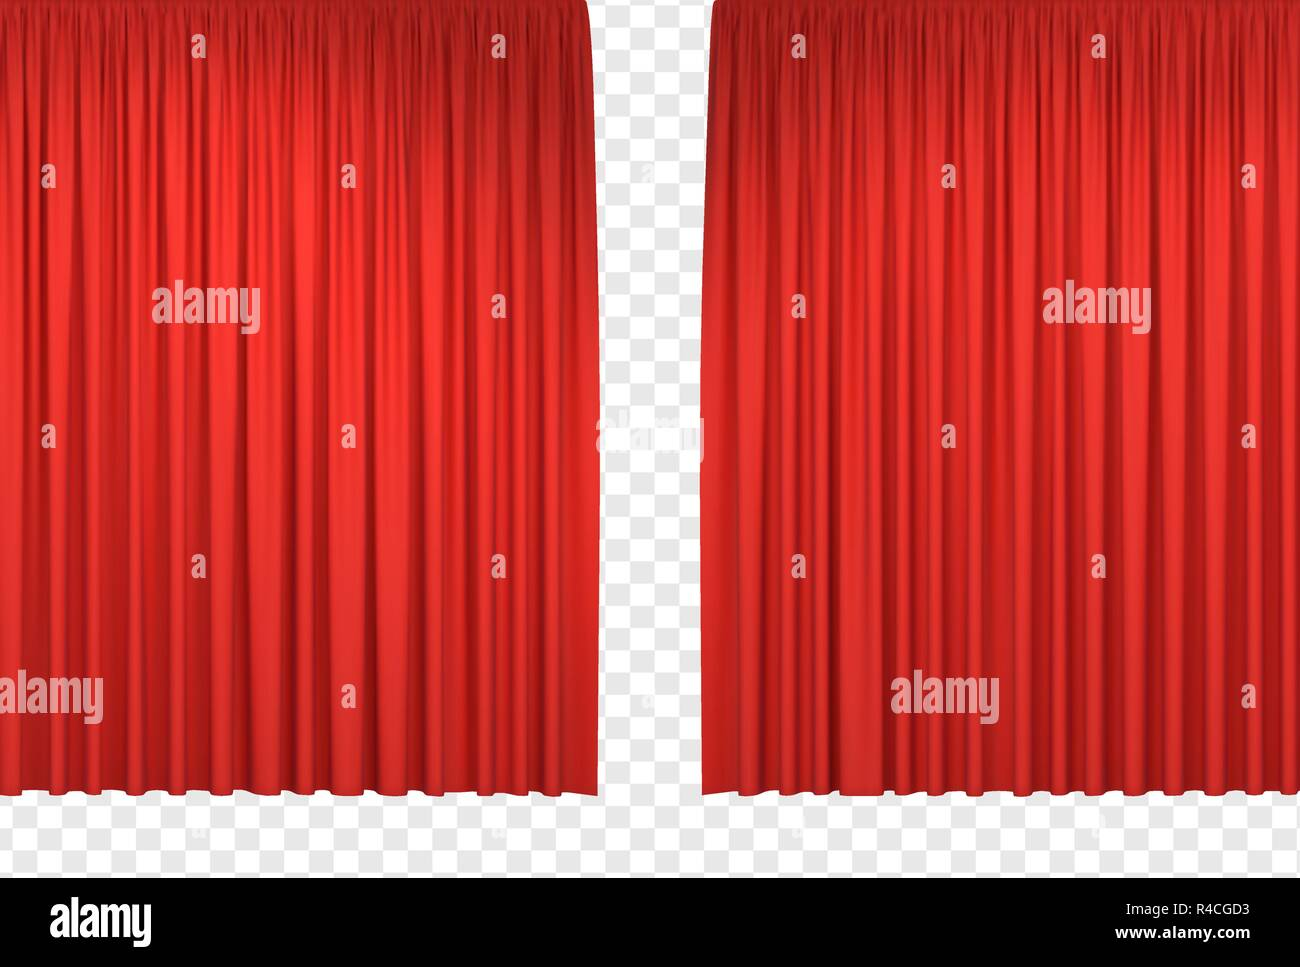 Red stage curtains. Realistic open theatrical cinema drapes for interior performance event on theatrical stage or in concert hall. Vector illustration - Stock Vector